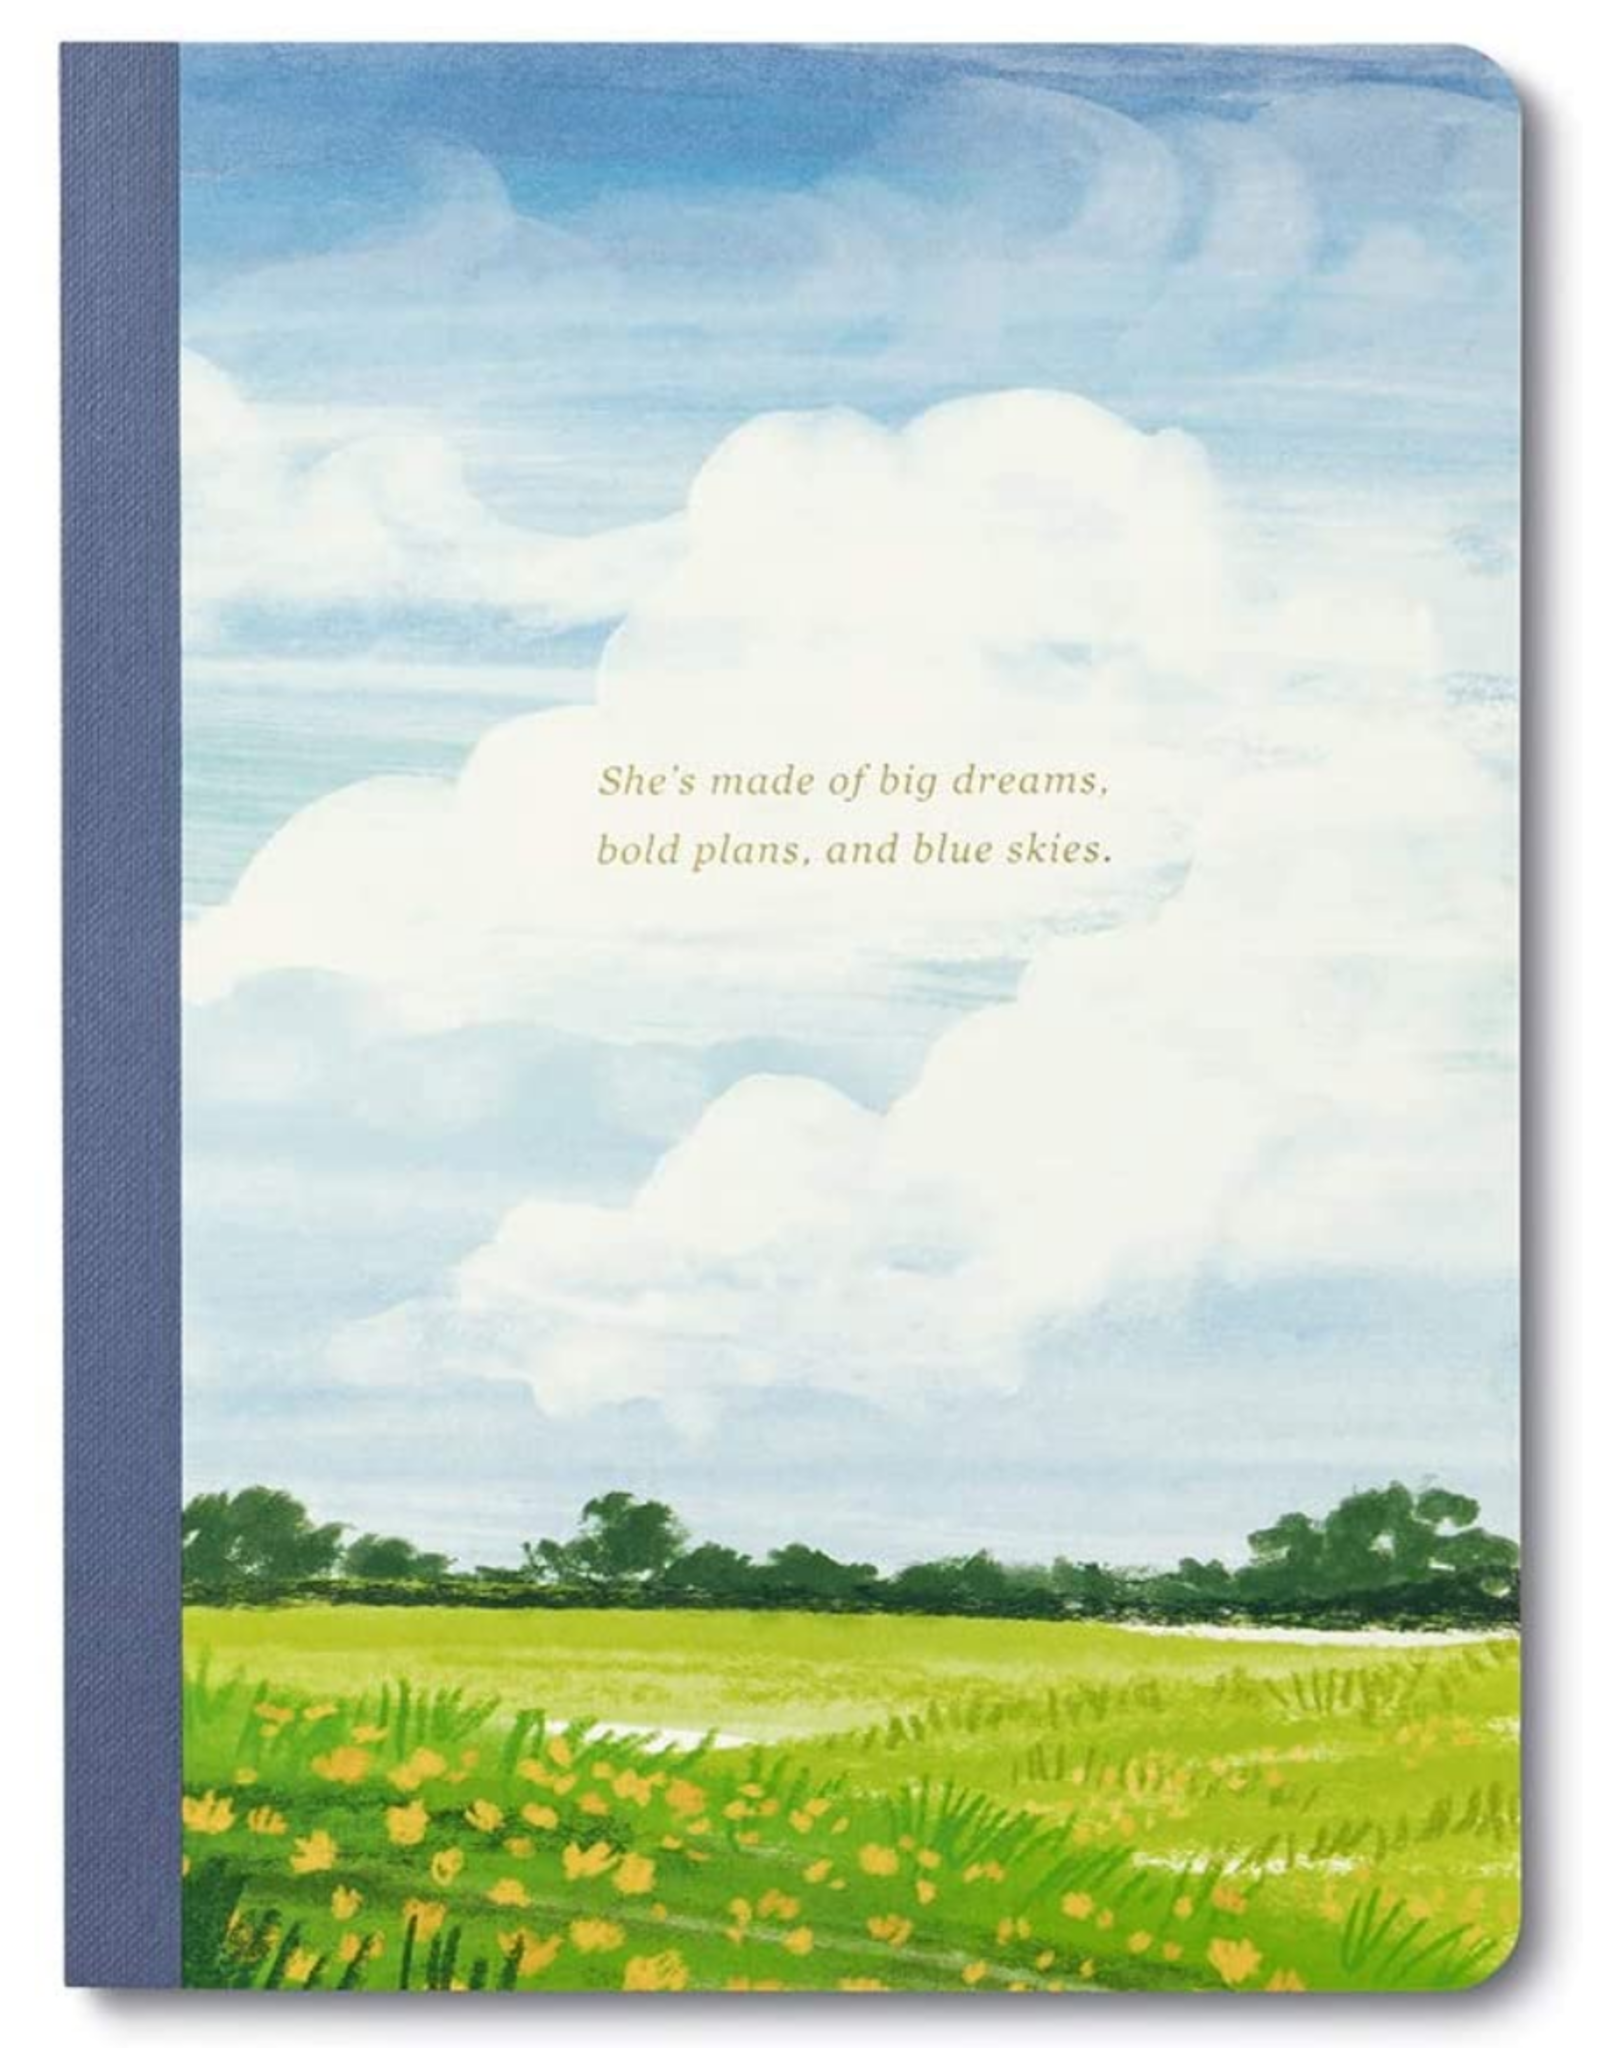 Compendium Her Words - She's made of big dreams, bold plans, and blue skies notebook